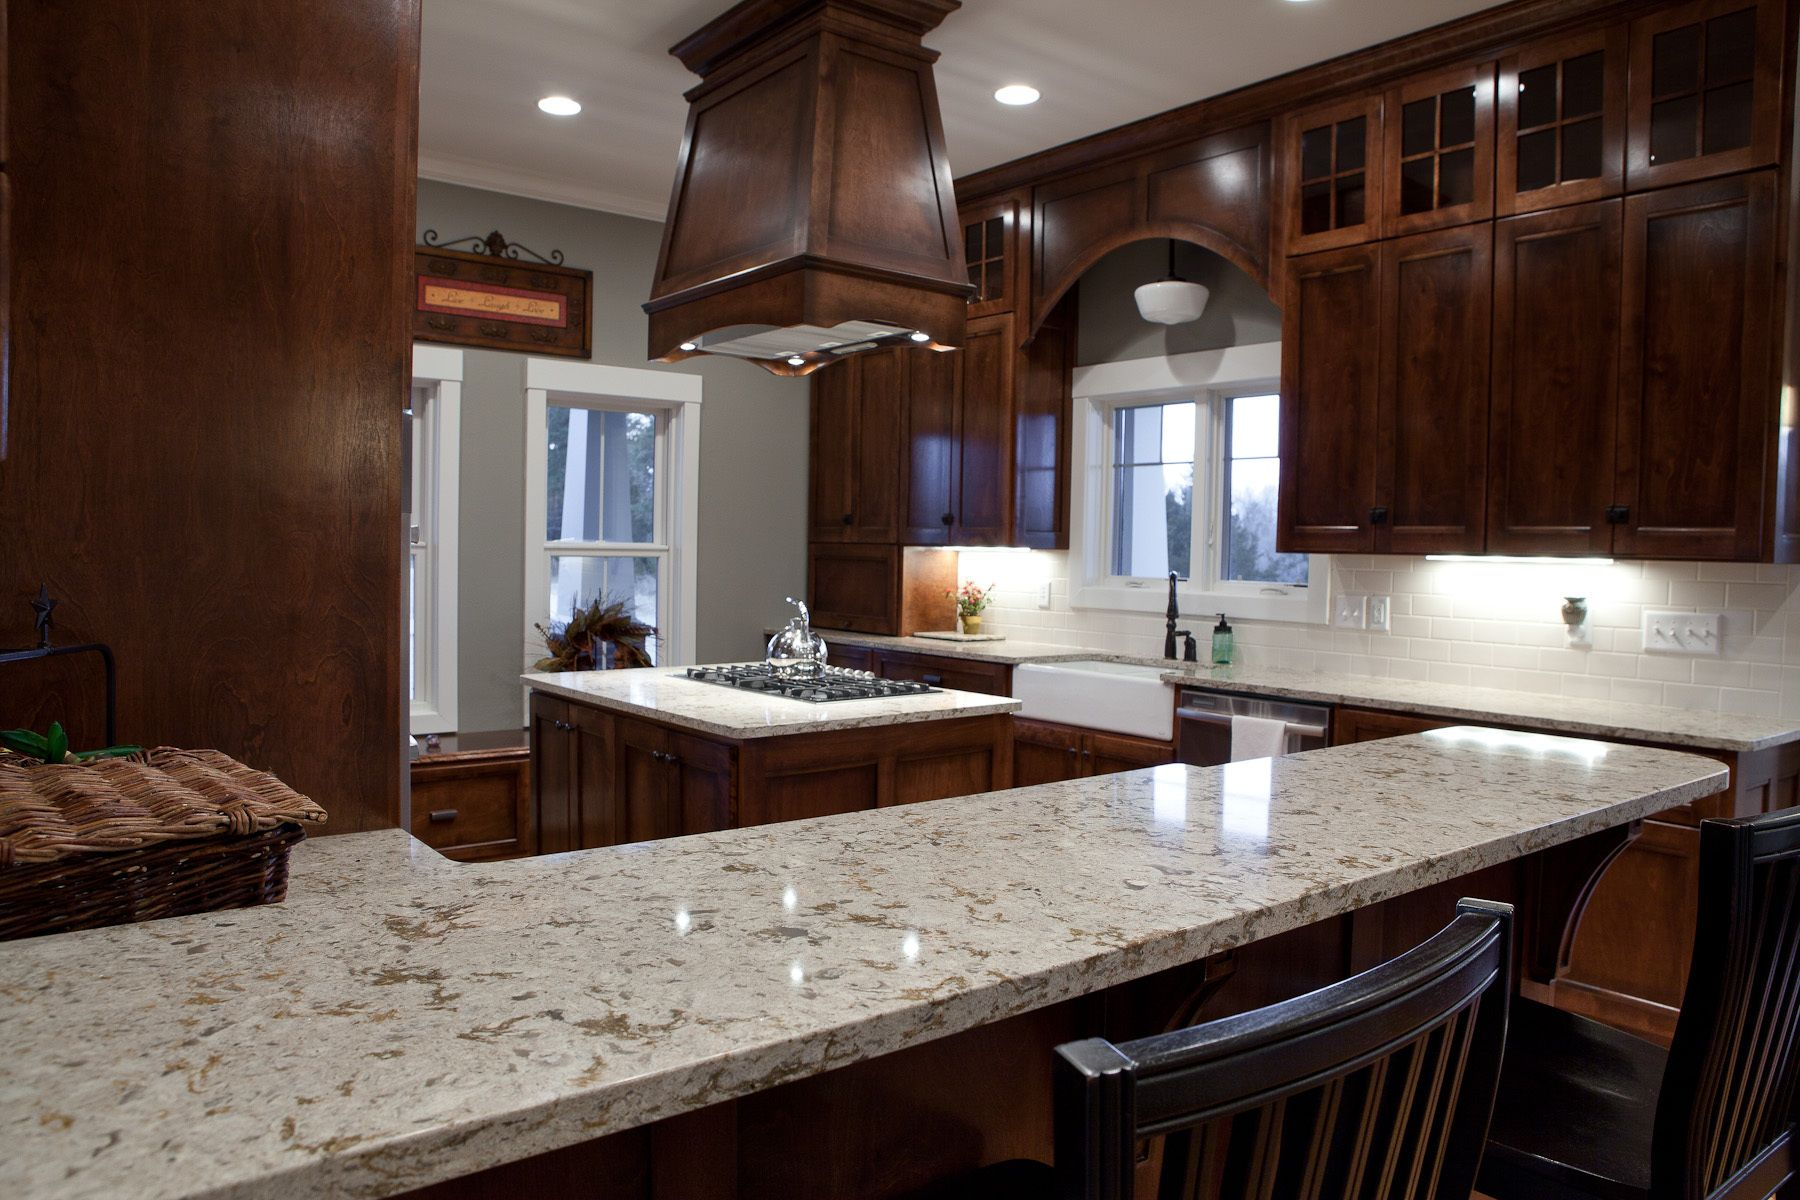 Best Kitchen White Kitchen Cabinets Quartz Countertops Wood 400 x 300